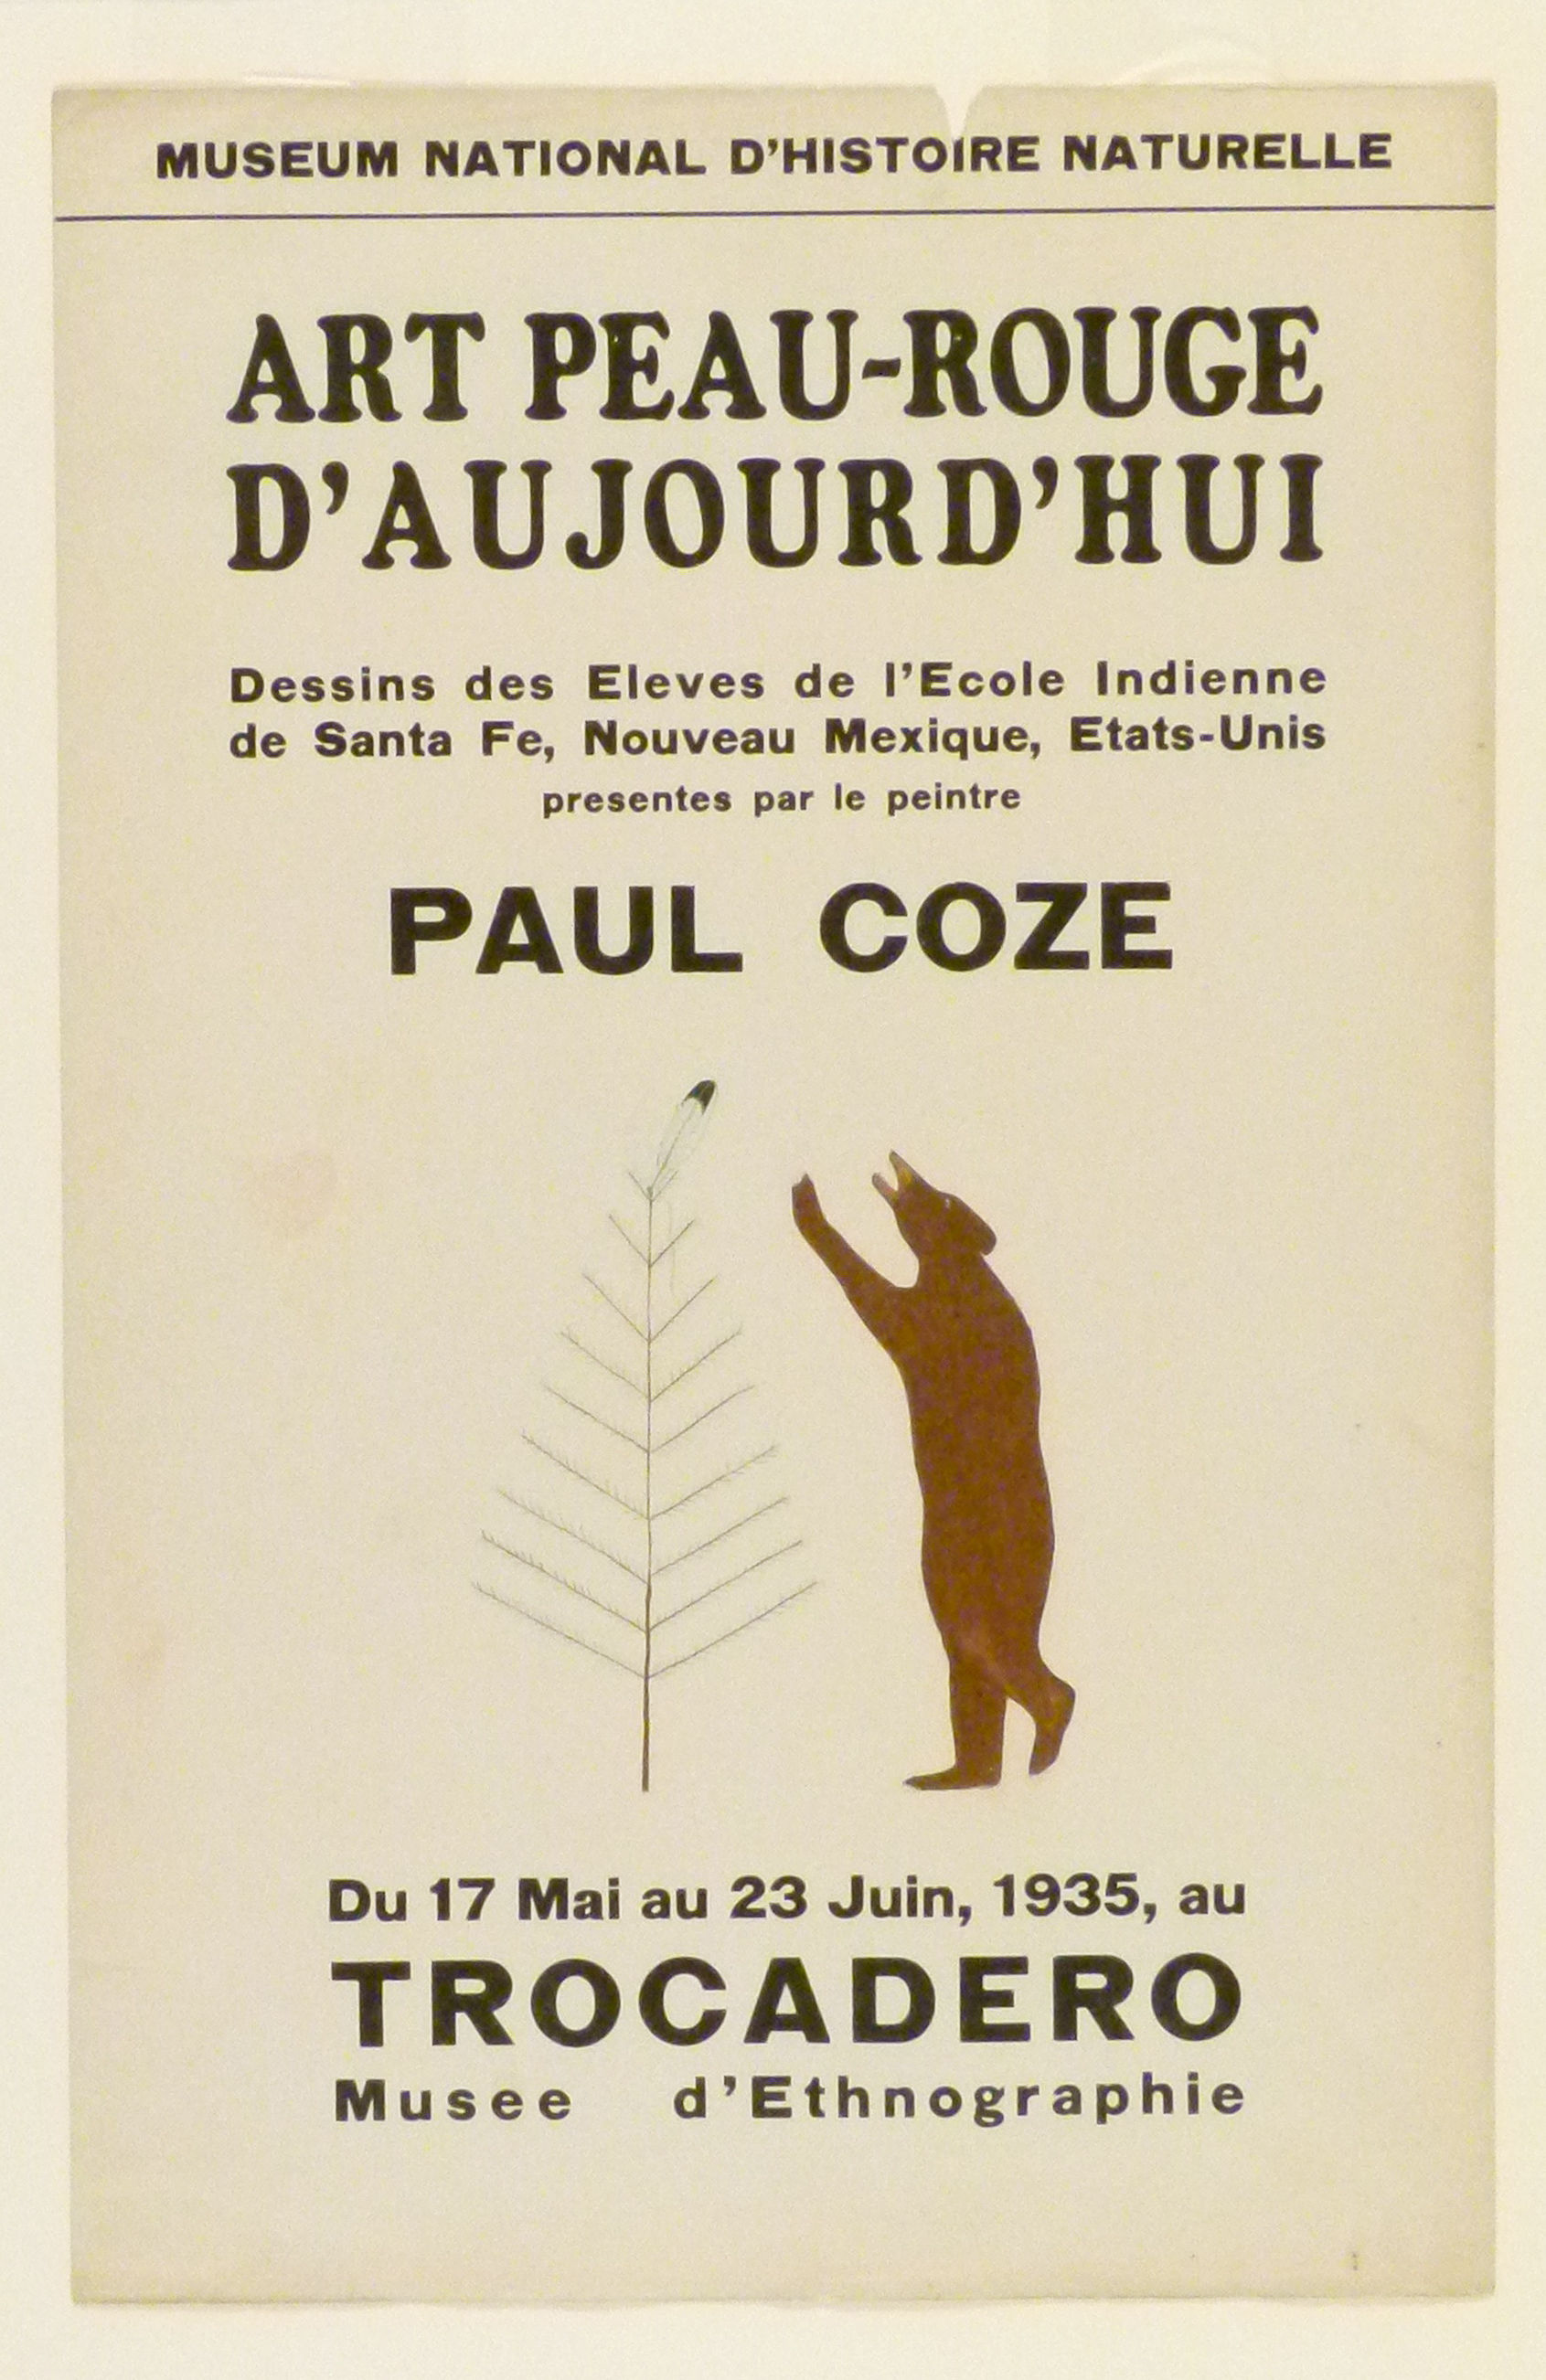 Art Exhibition Poster with painting of brown bear standing upright facing a leafless tree with a feather at its top.